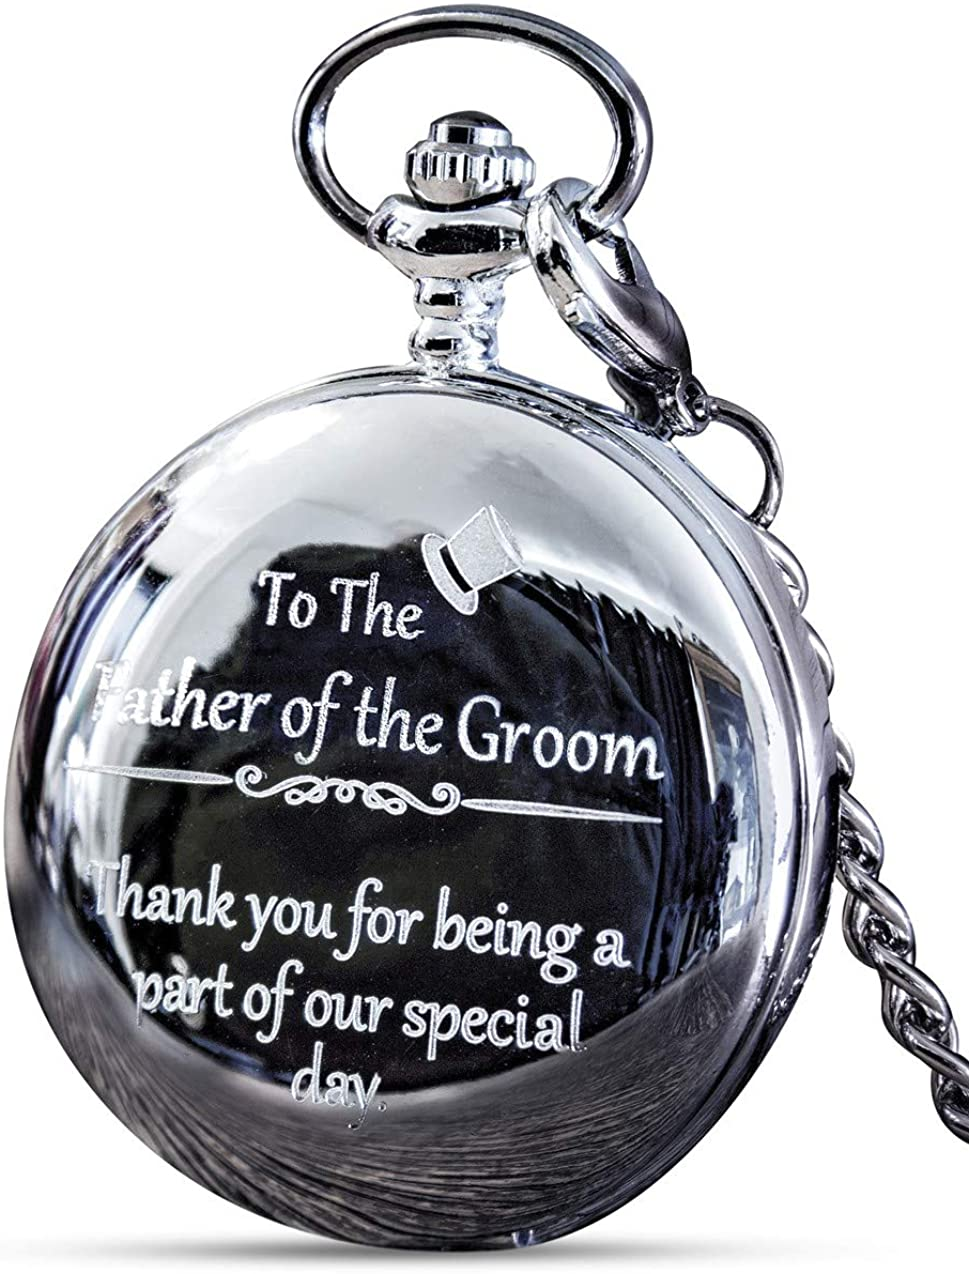 Father of The Groom Gifts - Engraved 'Father of The Groom' Pocket Watch - Wedding Gifts for Father of The Groom from Groom & Bride